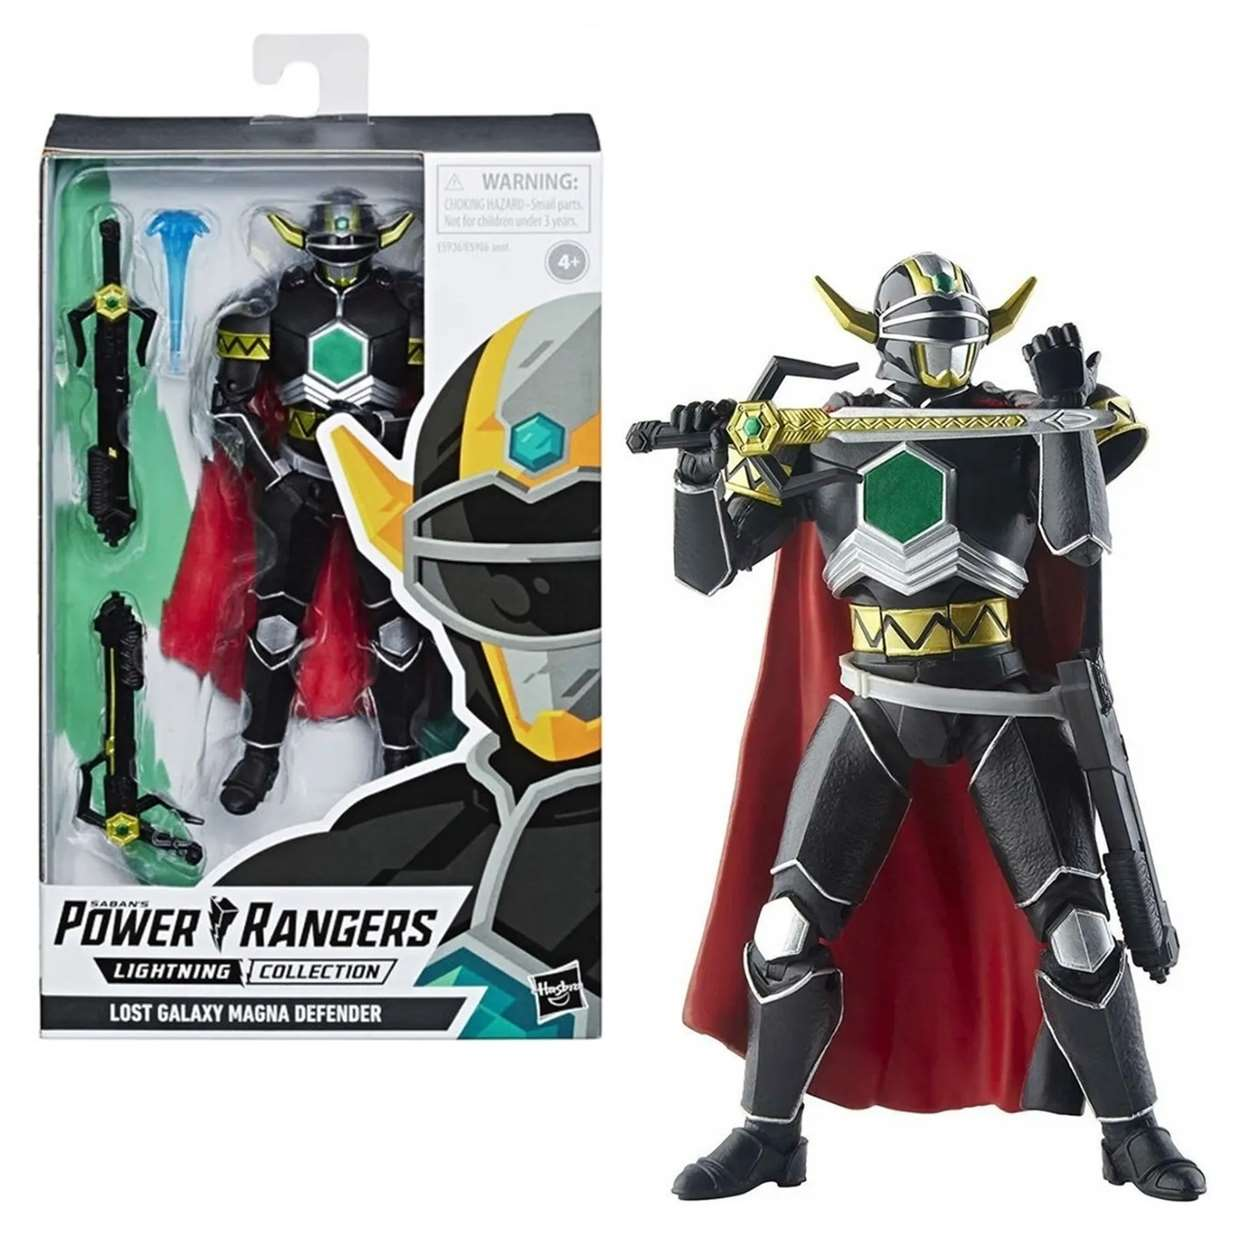 Power Rangers Lighting Collection Lost Galaxy Magna Defender